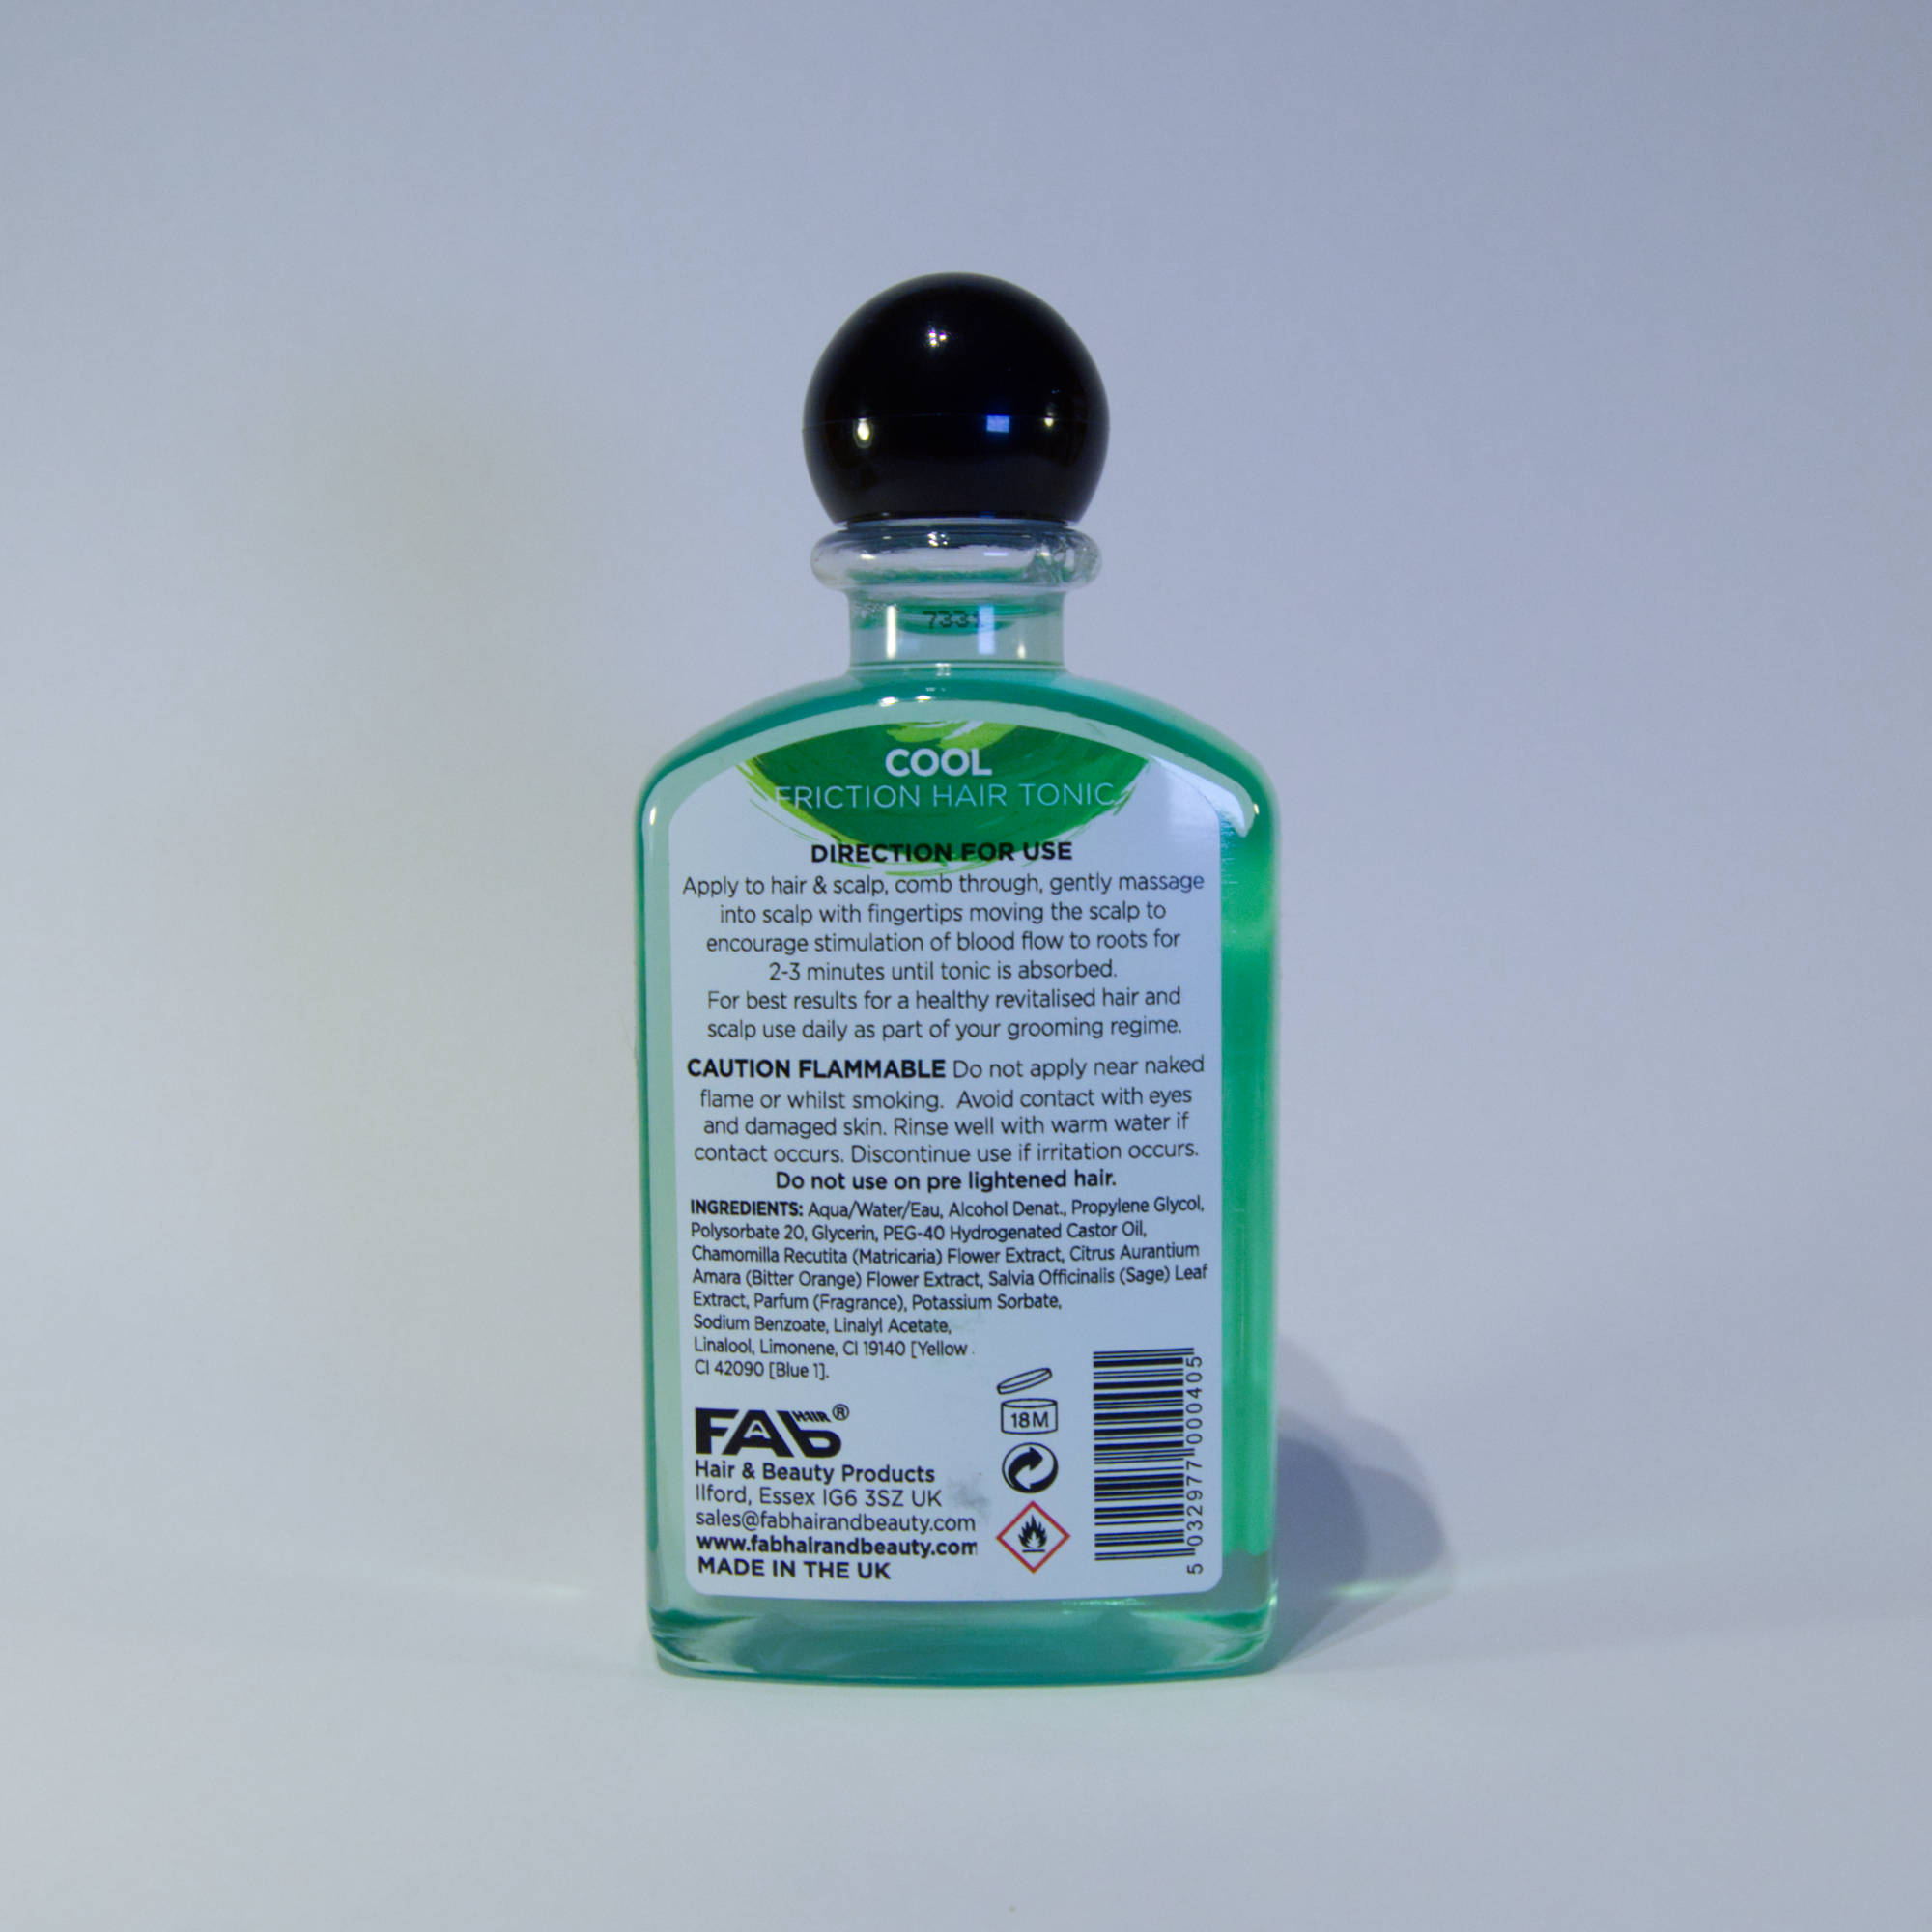 250ml bottle of Cool flavoured FAB friction hair tonic (rear view)